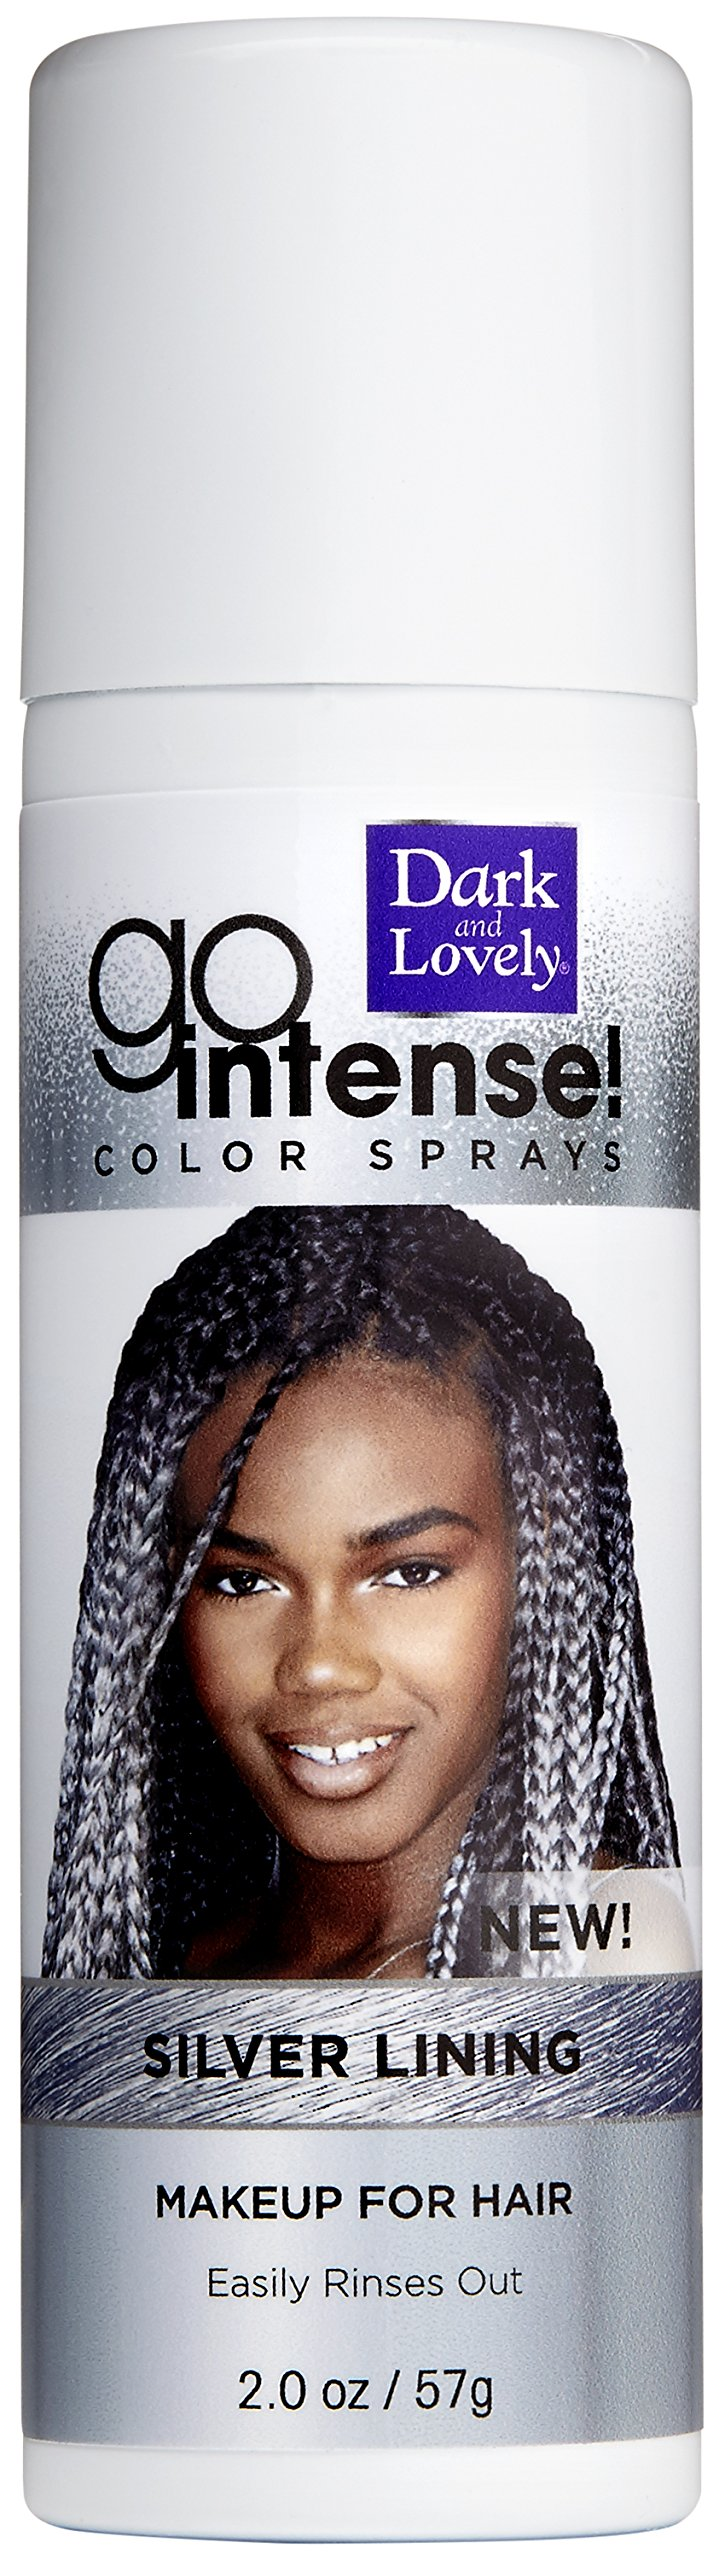 Amazon Dark And Lovely Go Intense Color Sprays Beauty